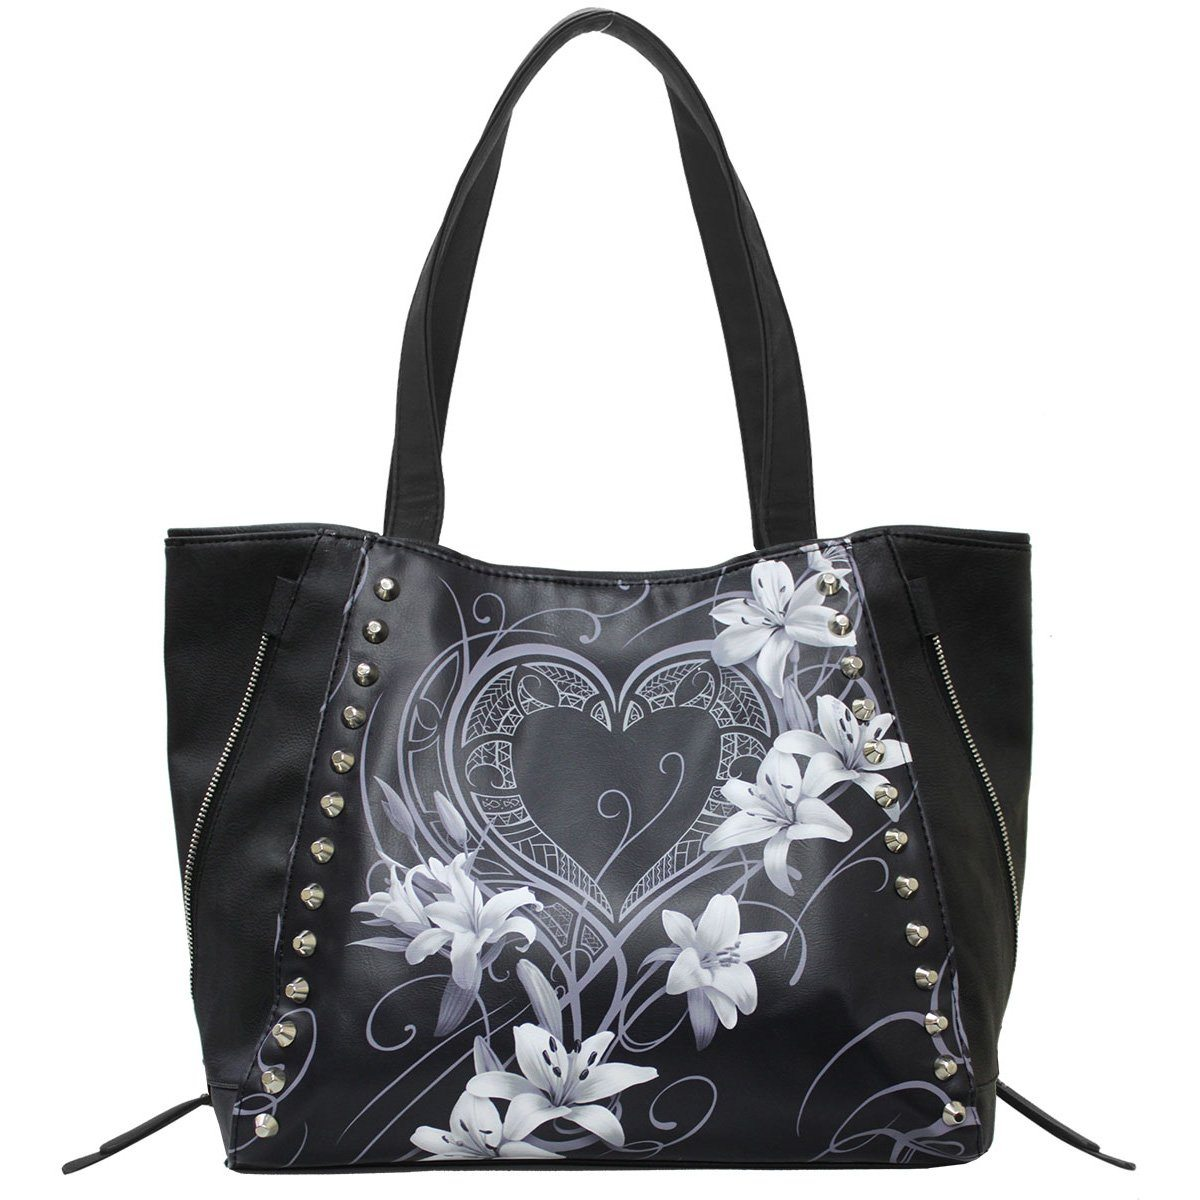 PURE OF HEART - Tote Bag - Top quality PU Leather Studded - Rebels Depot